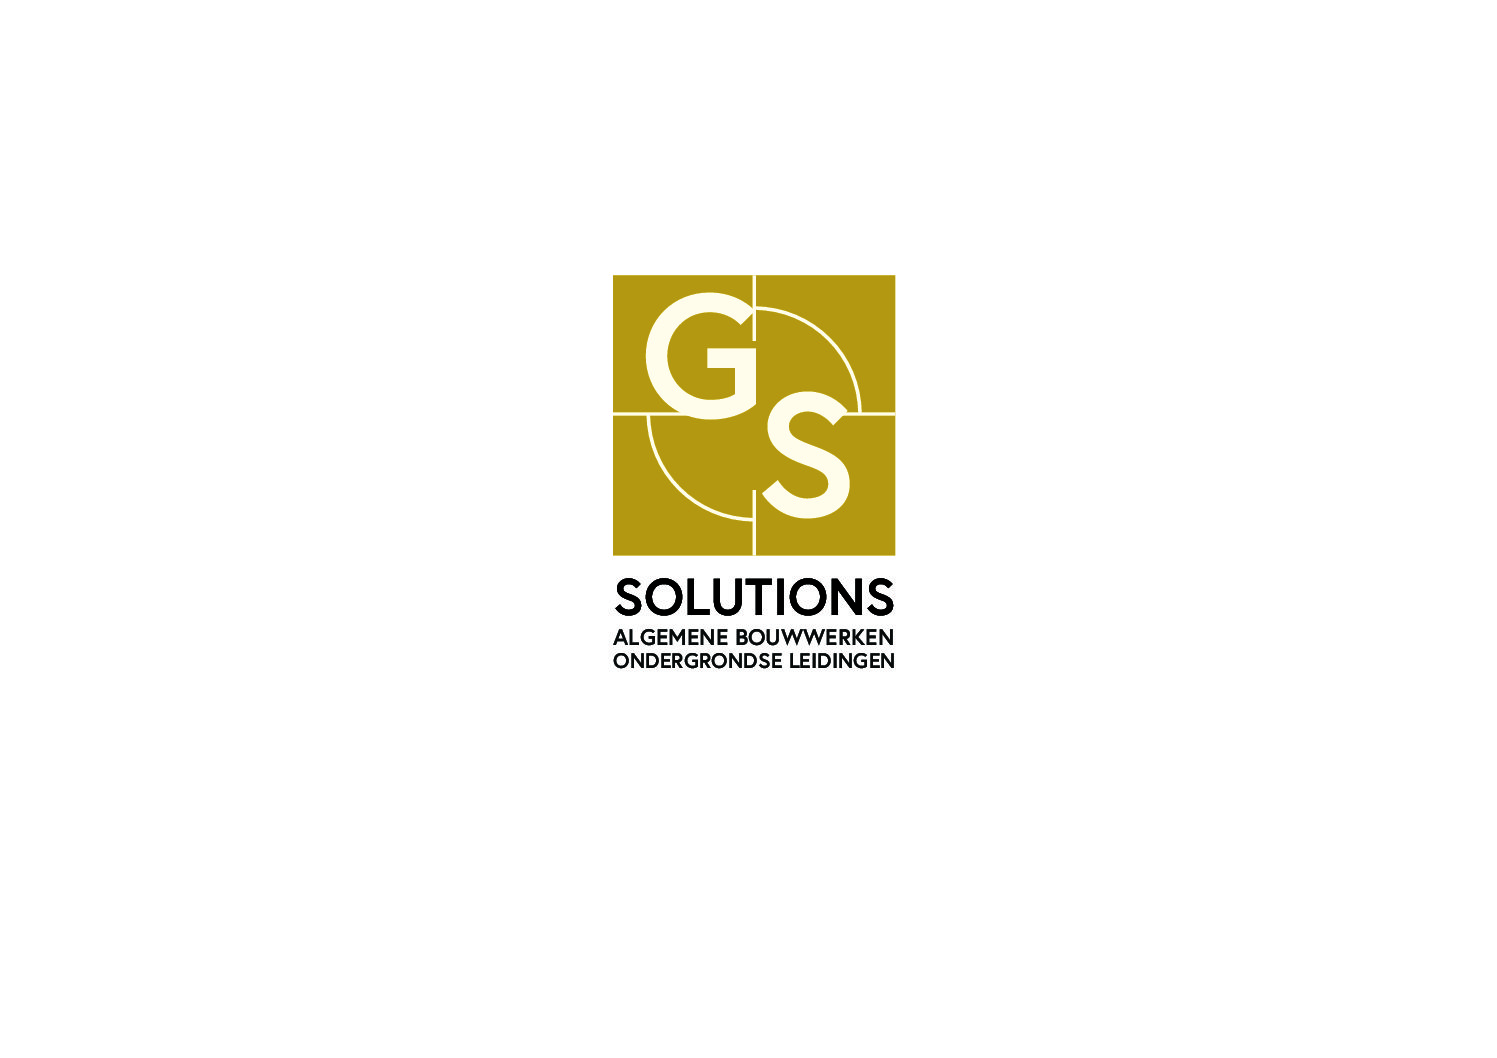 goud-gs-solutions